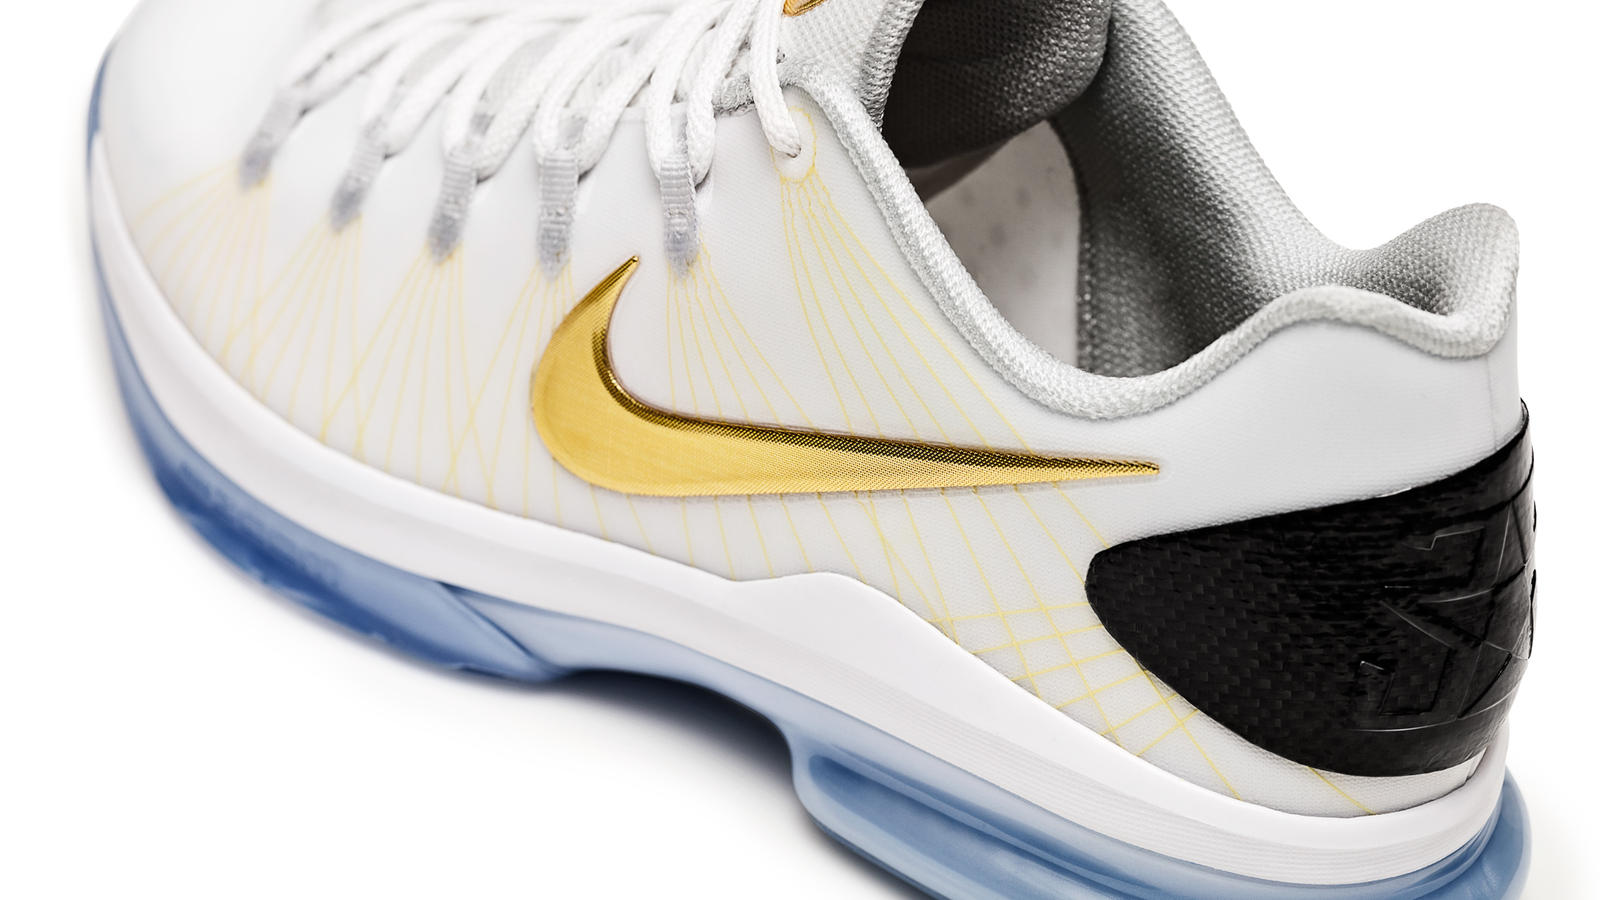 971390a5452a NIke ELITE Series 2.0+ Pays Tribute to Championship - Nike News